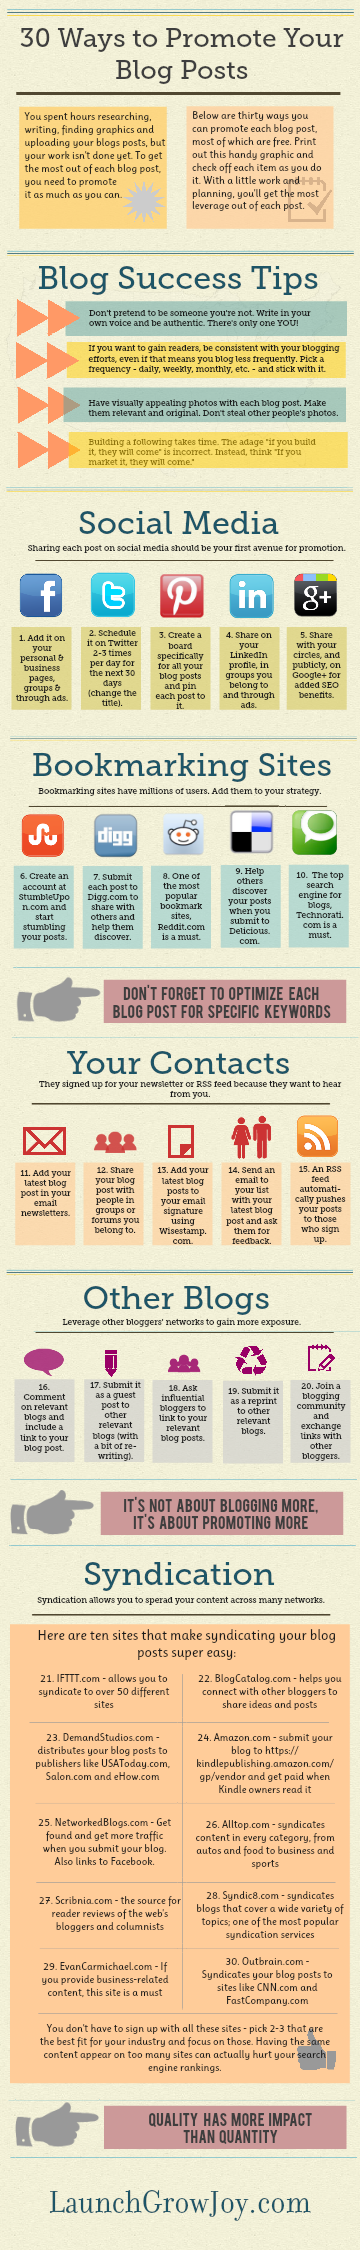 30 ways to promote your blog